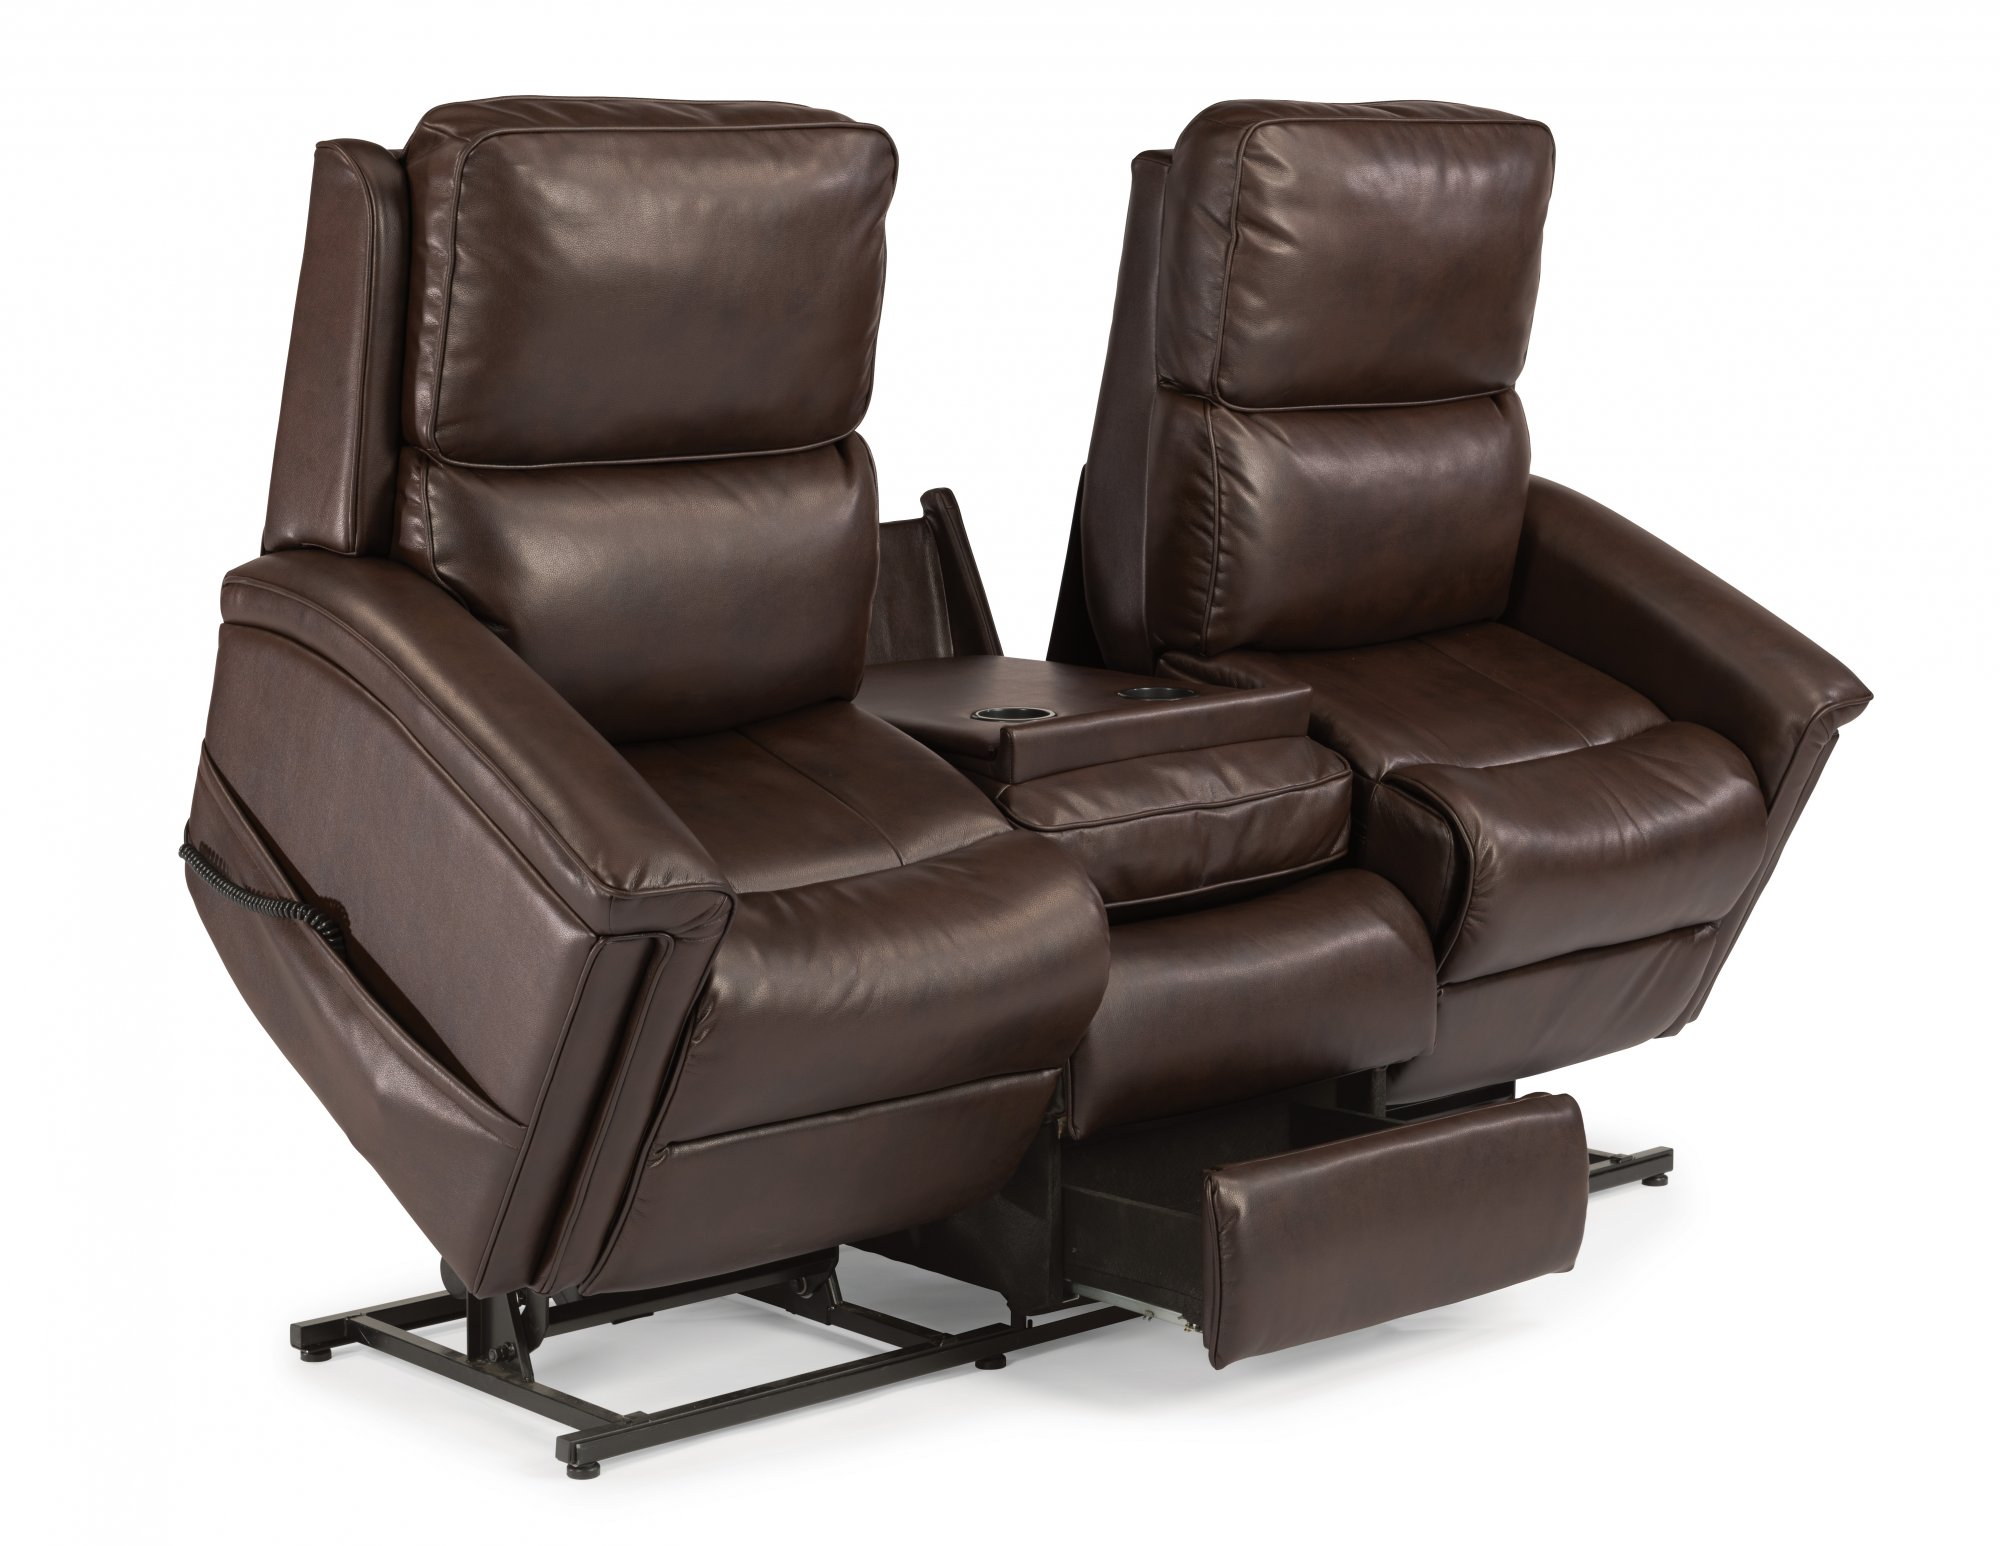 Fabric Lift Reclining Sofa  sc 1 st  Flexsteel & Lift Reclining Furniture | Flexsteel.com islam-shia.org